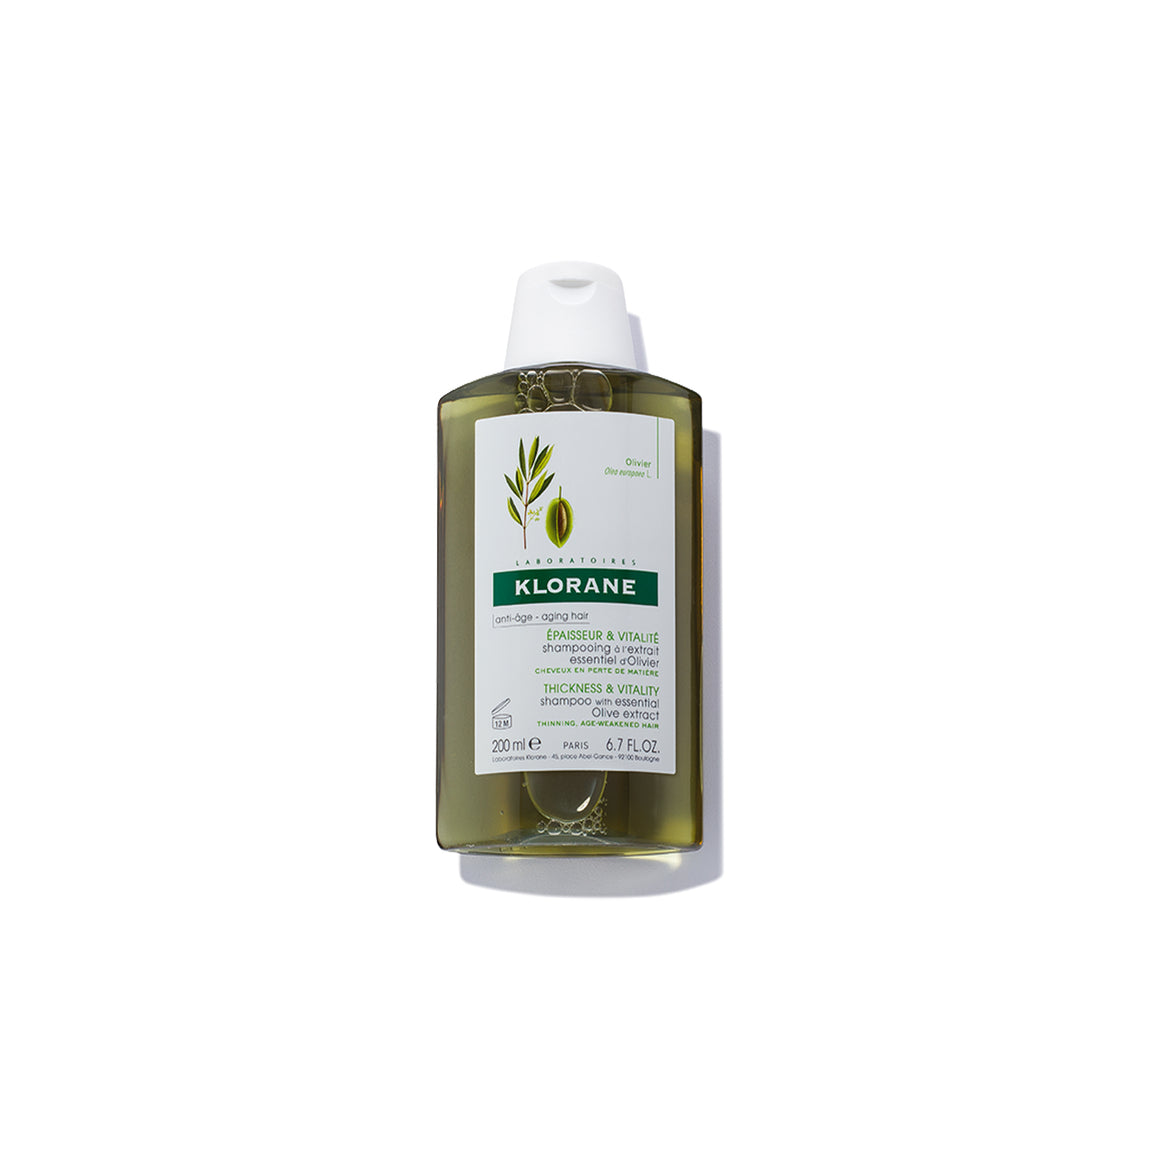 Klorane Shampoo with Essential Olive Extract